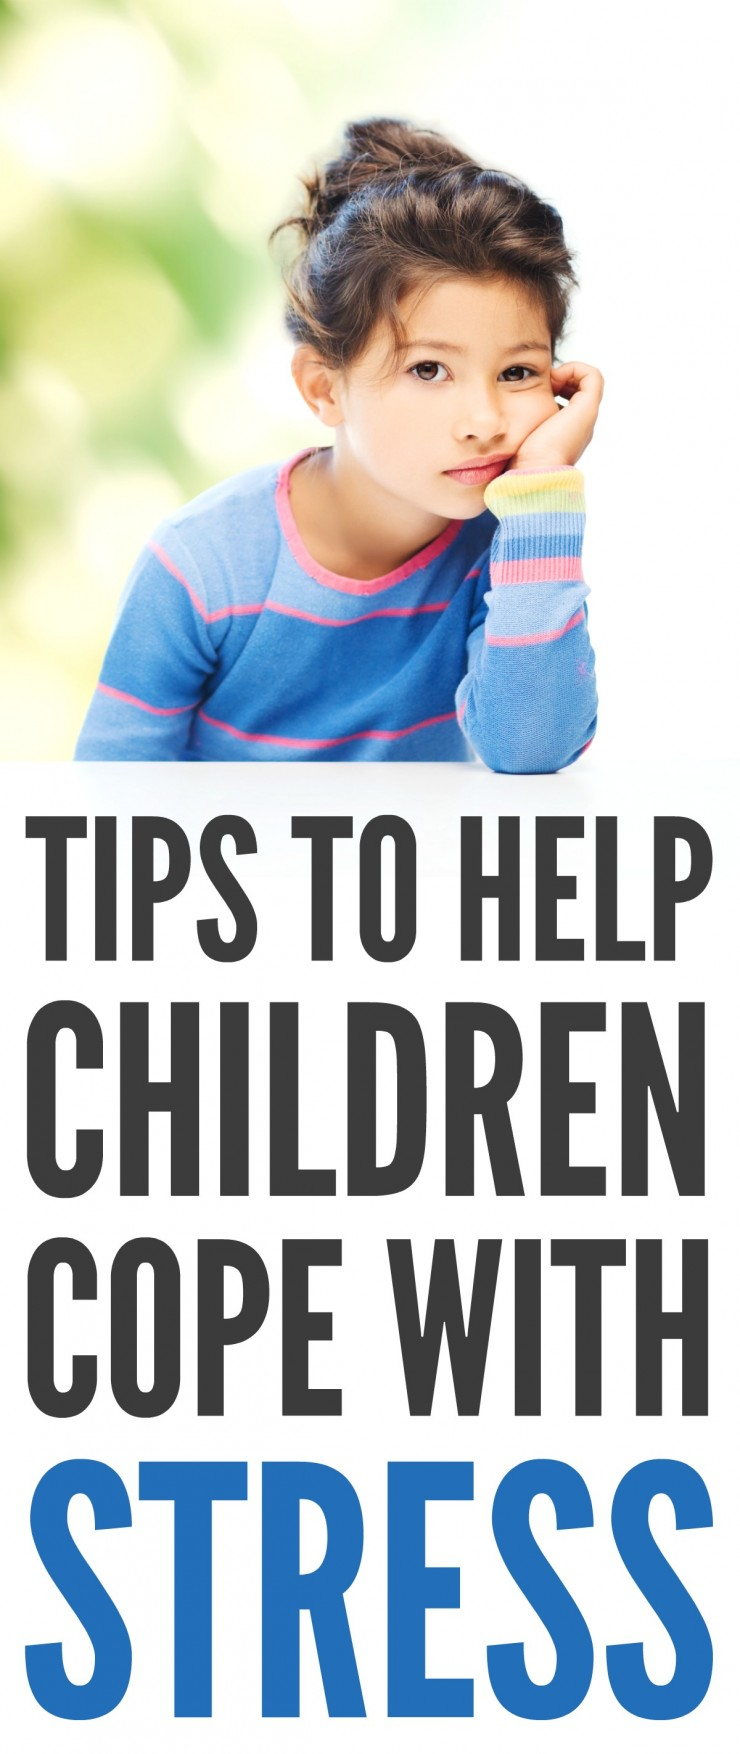 Tips to Help Children Cope with Stress